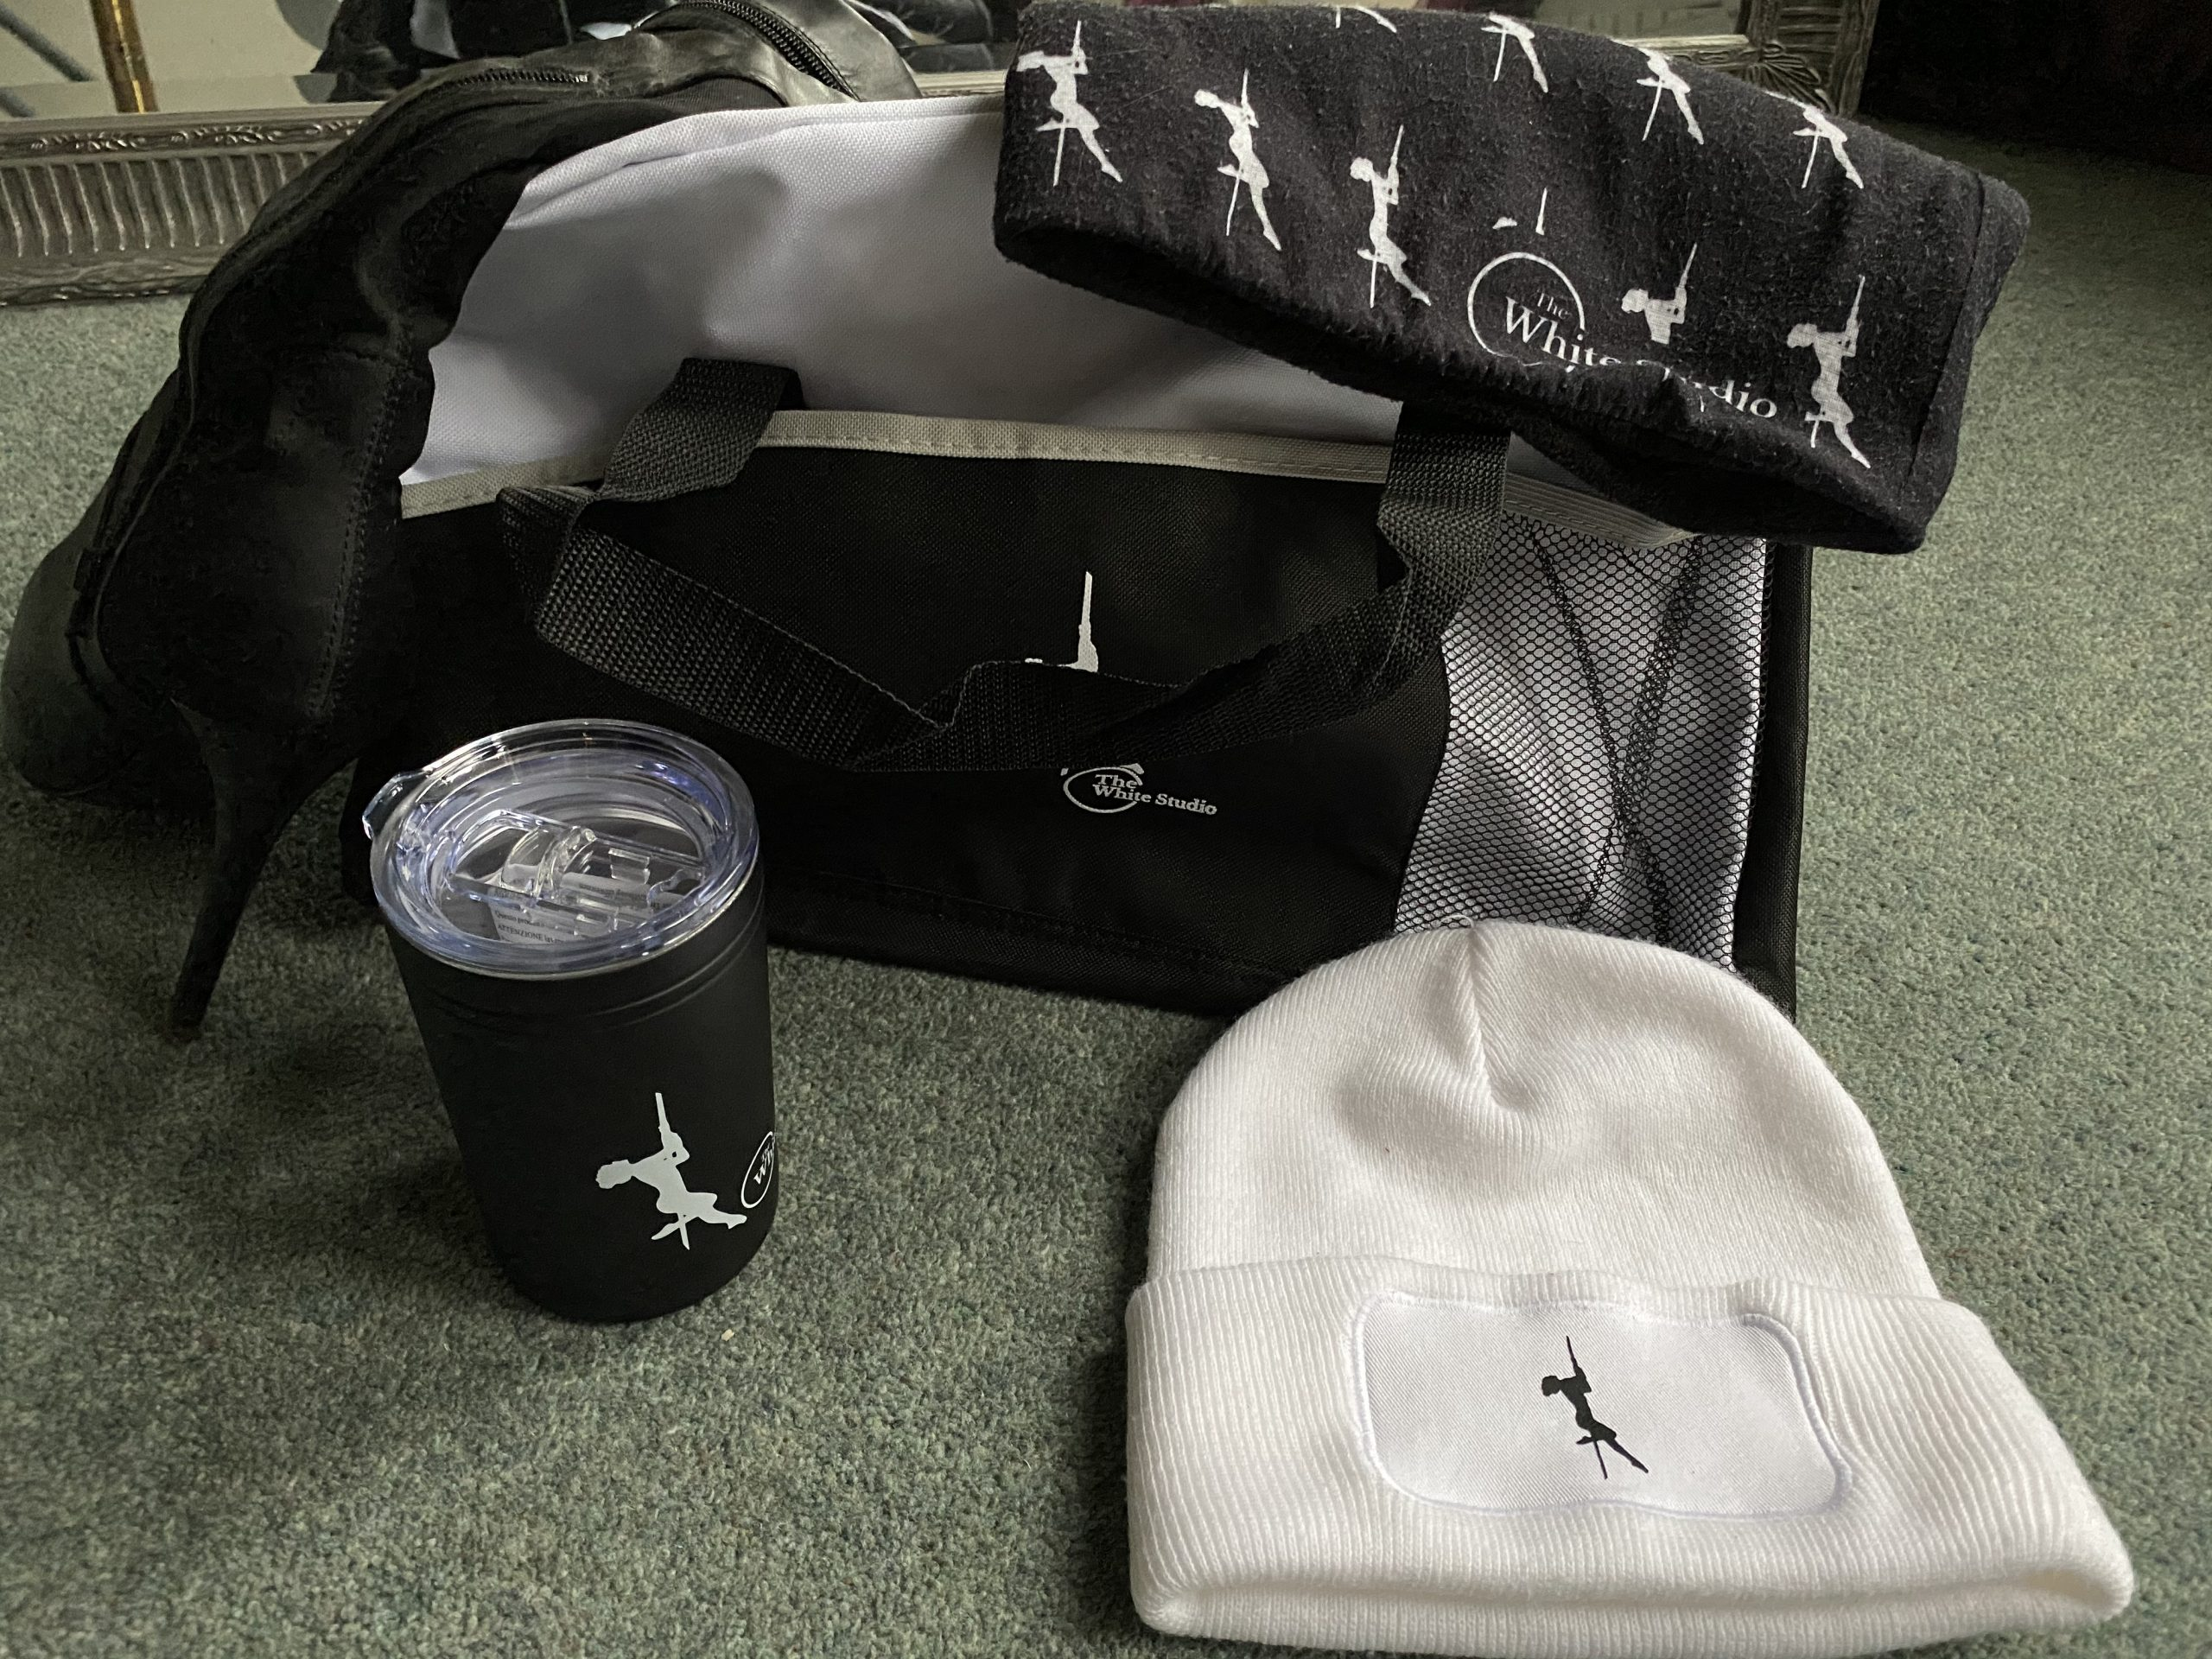 Duffel bag shown against other items, for size comparison.